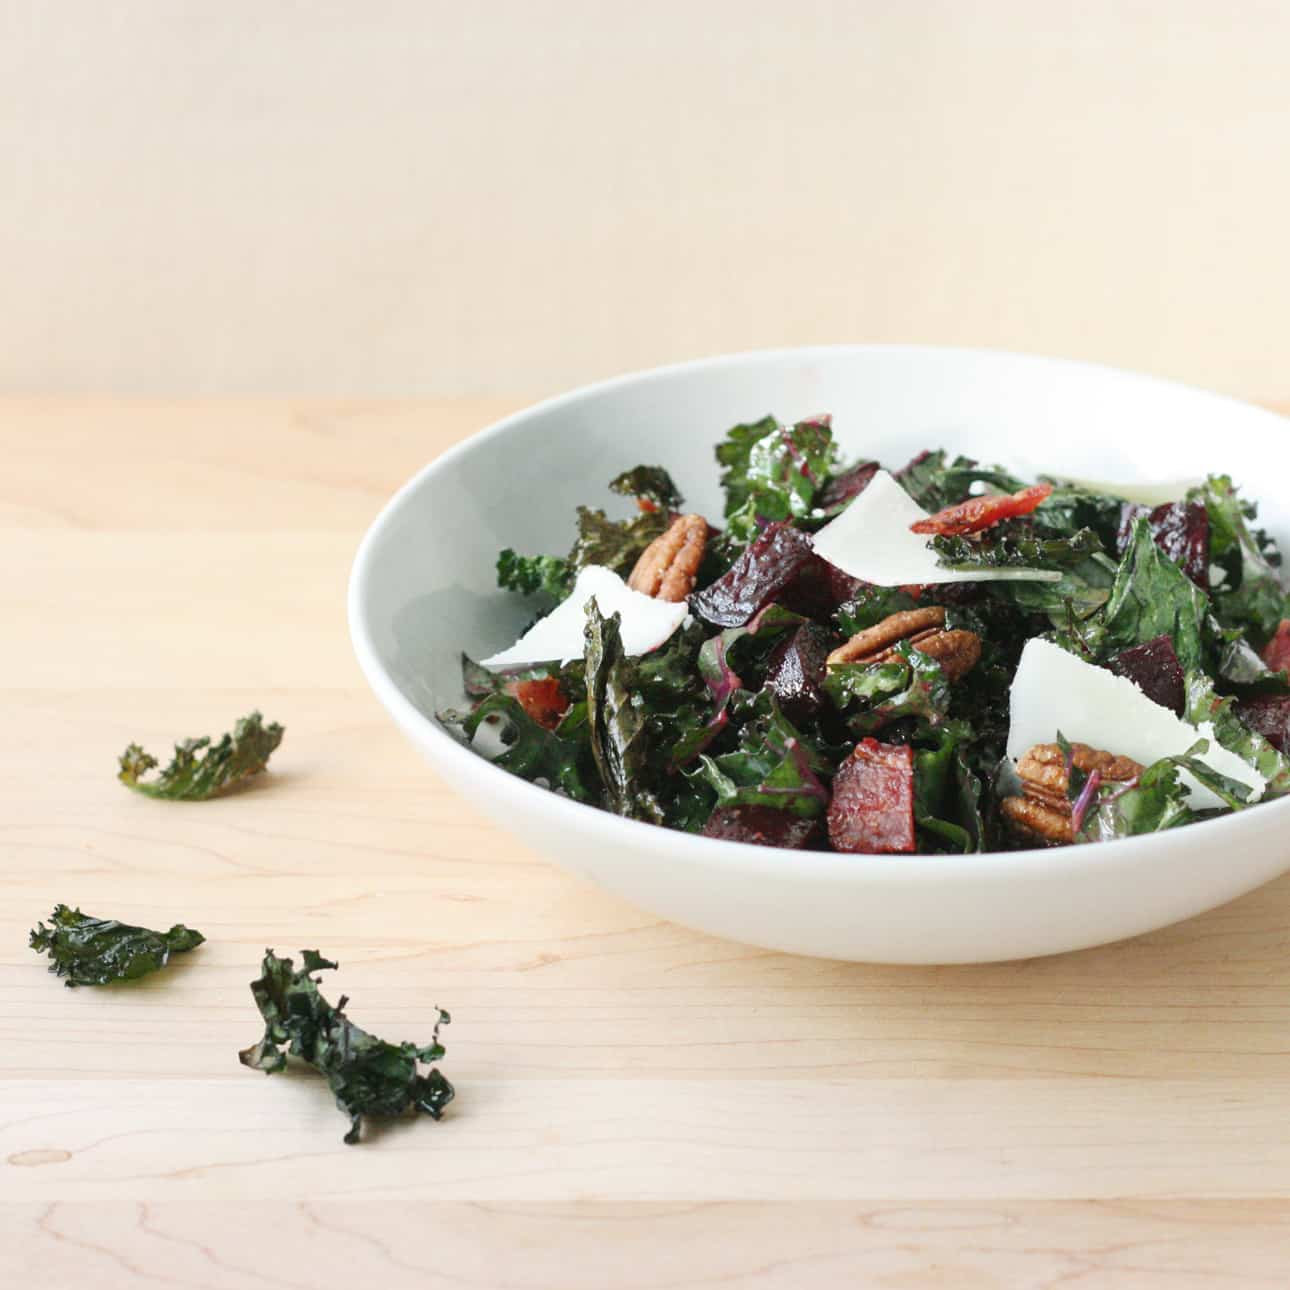 Crispy and Raw Kale, Beets, and Pecan Salad